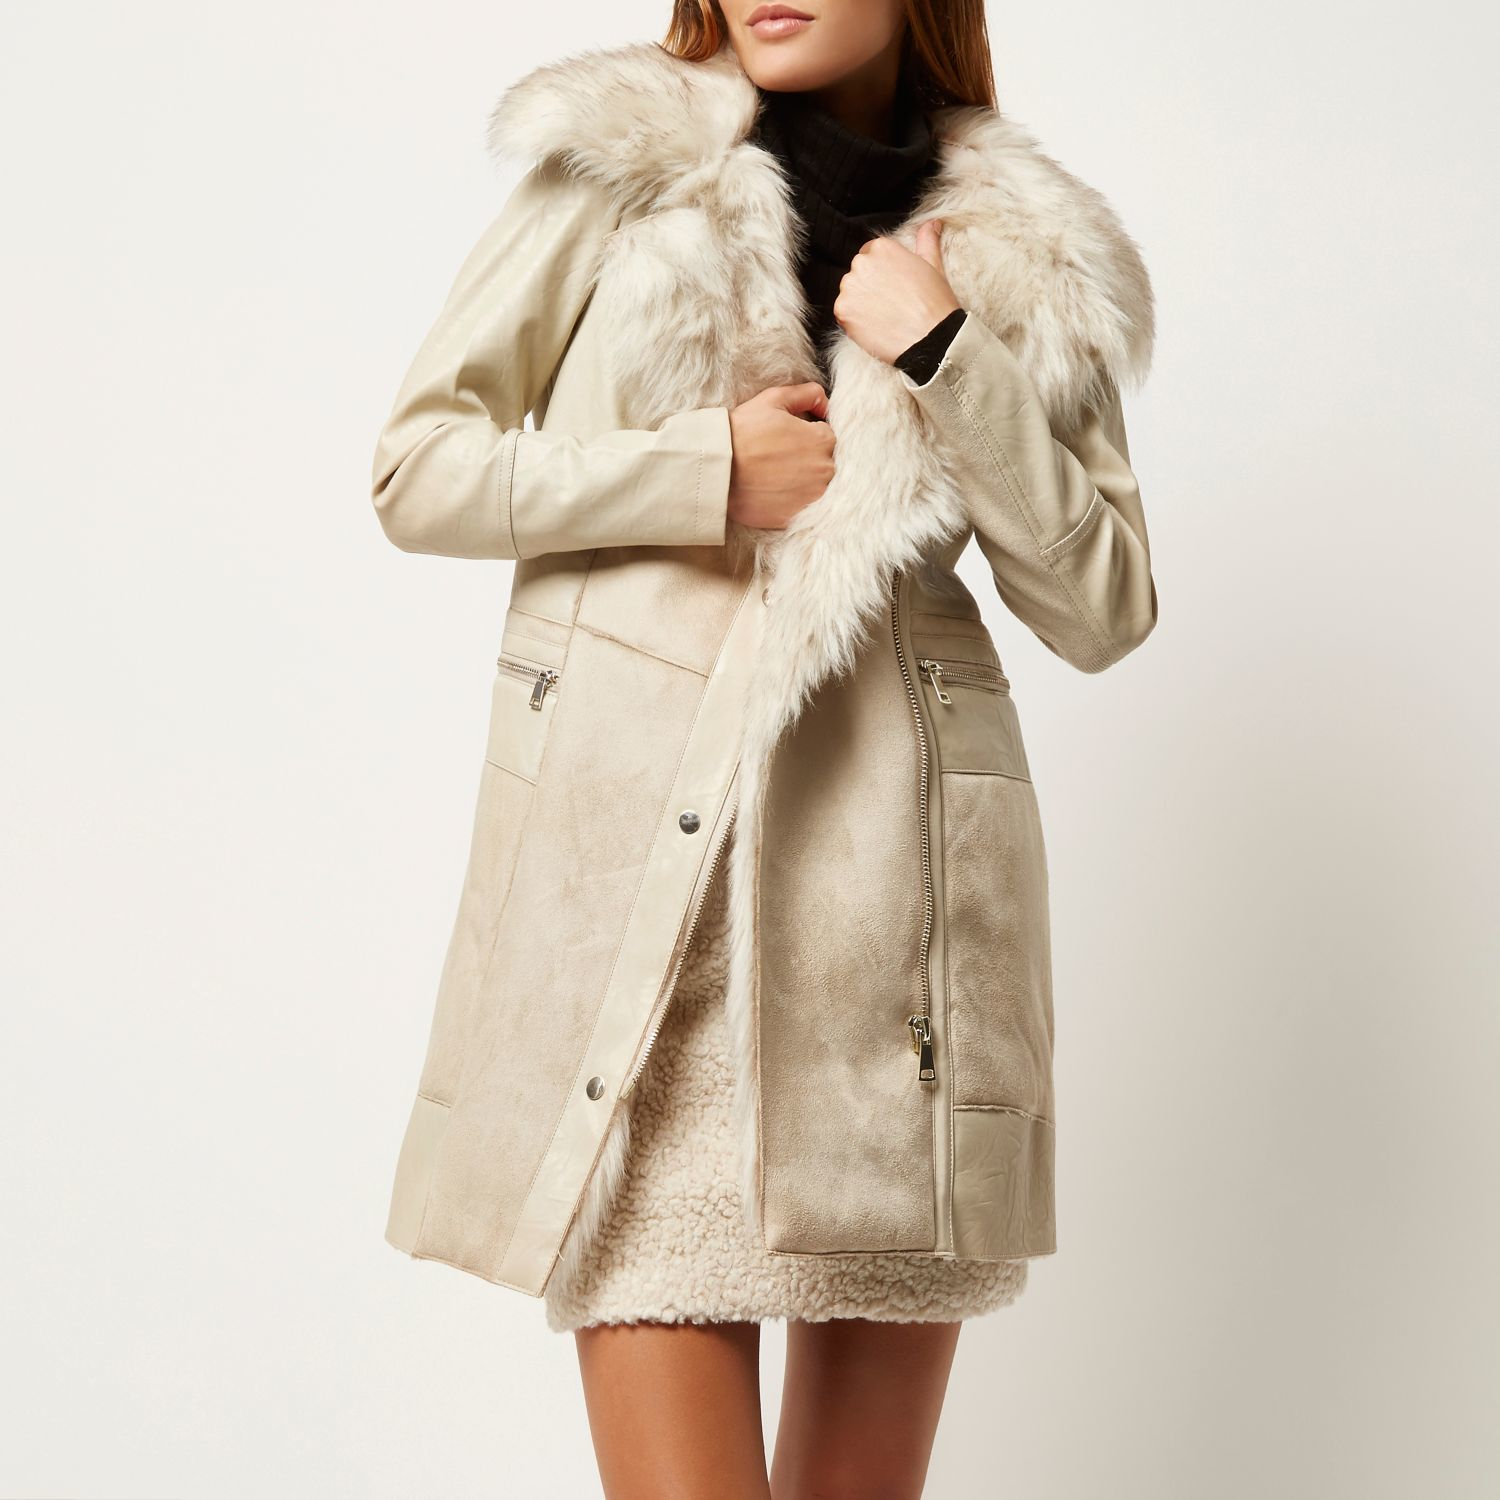 Find great deals on eBay for cream coat. Shop with confidence.